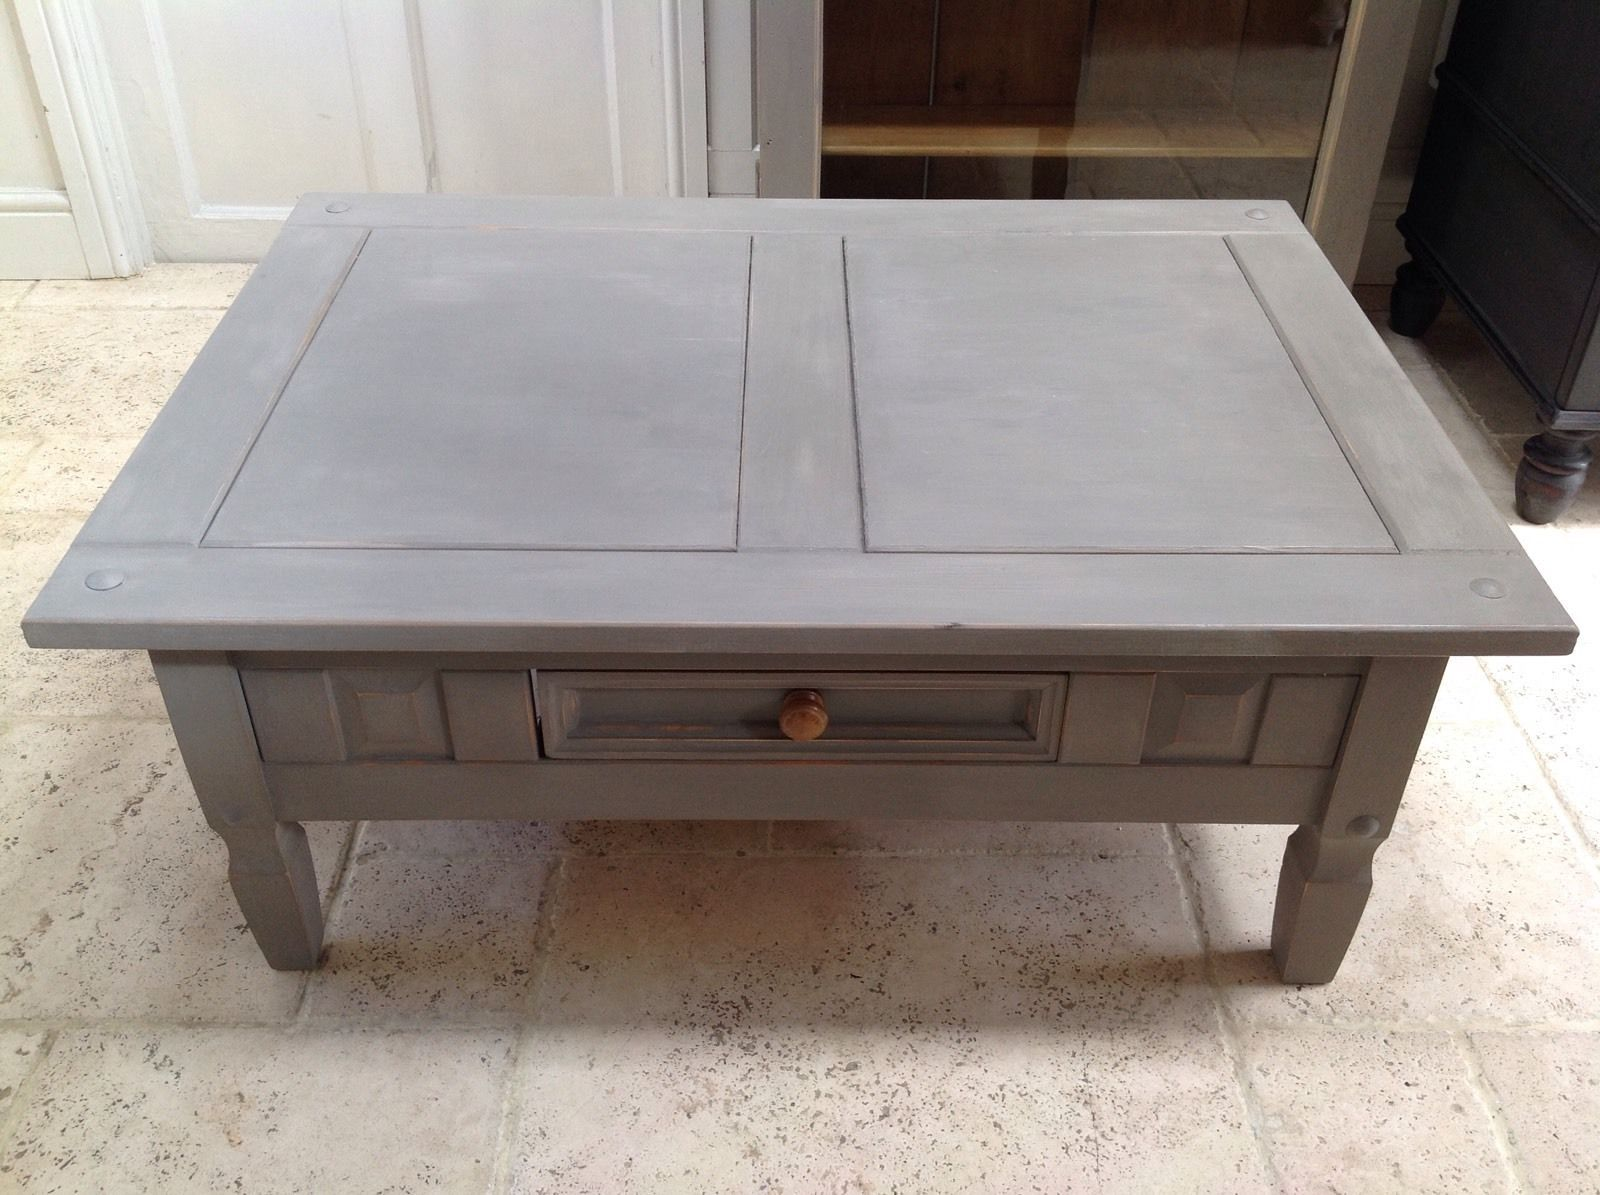 hand painted pine coffee table  annie sloan french linen rectangular - grey hand painted pine coffee table  annie sloan french linen rectangular